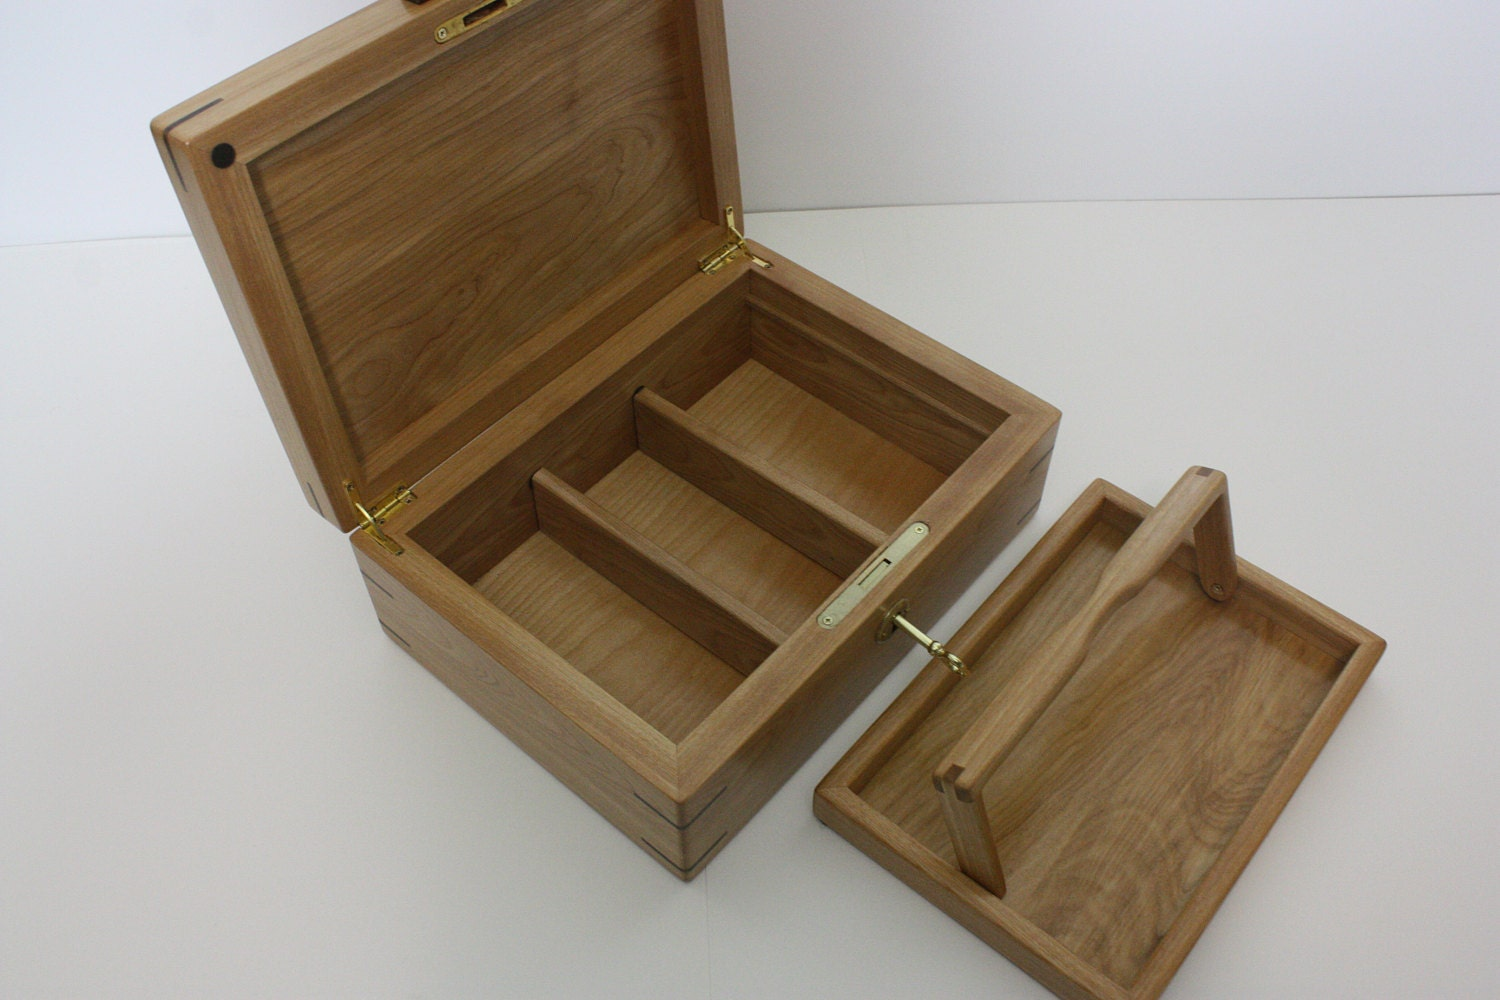 Locking Red Birch Wood Box with Tray and Dividers